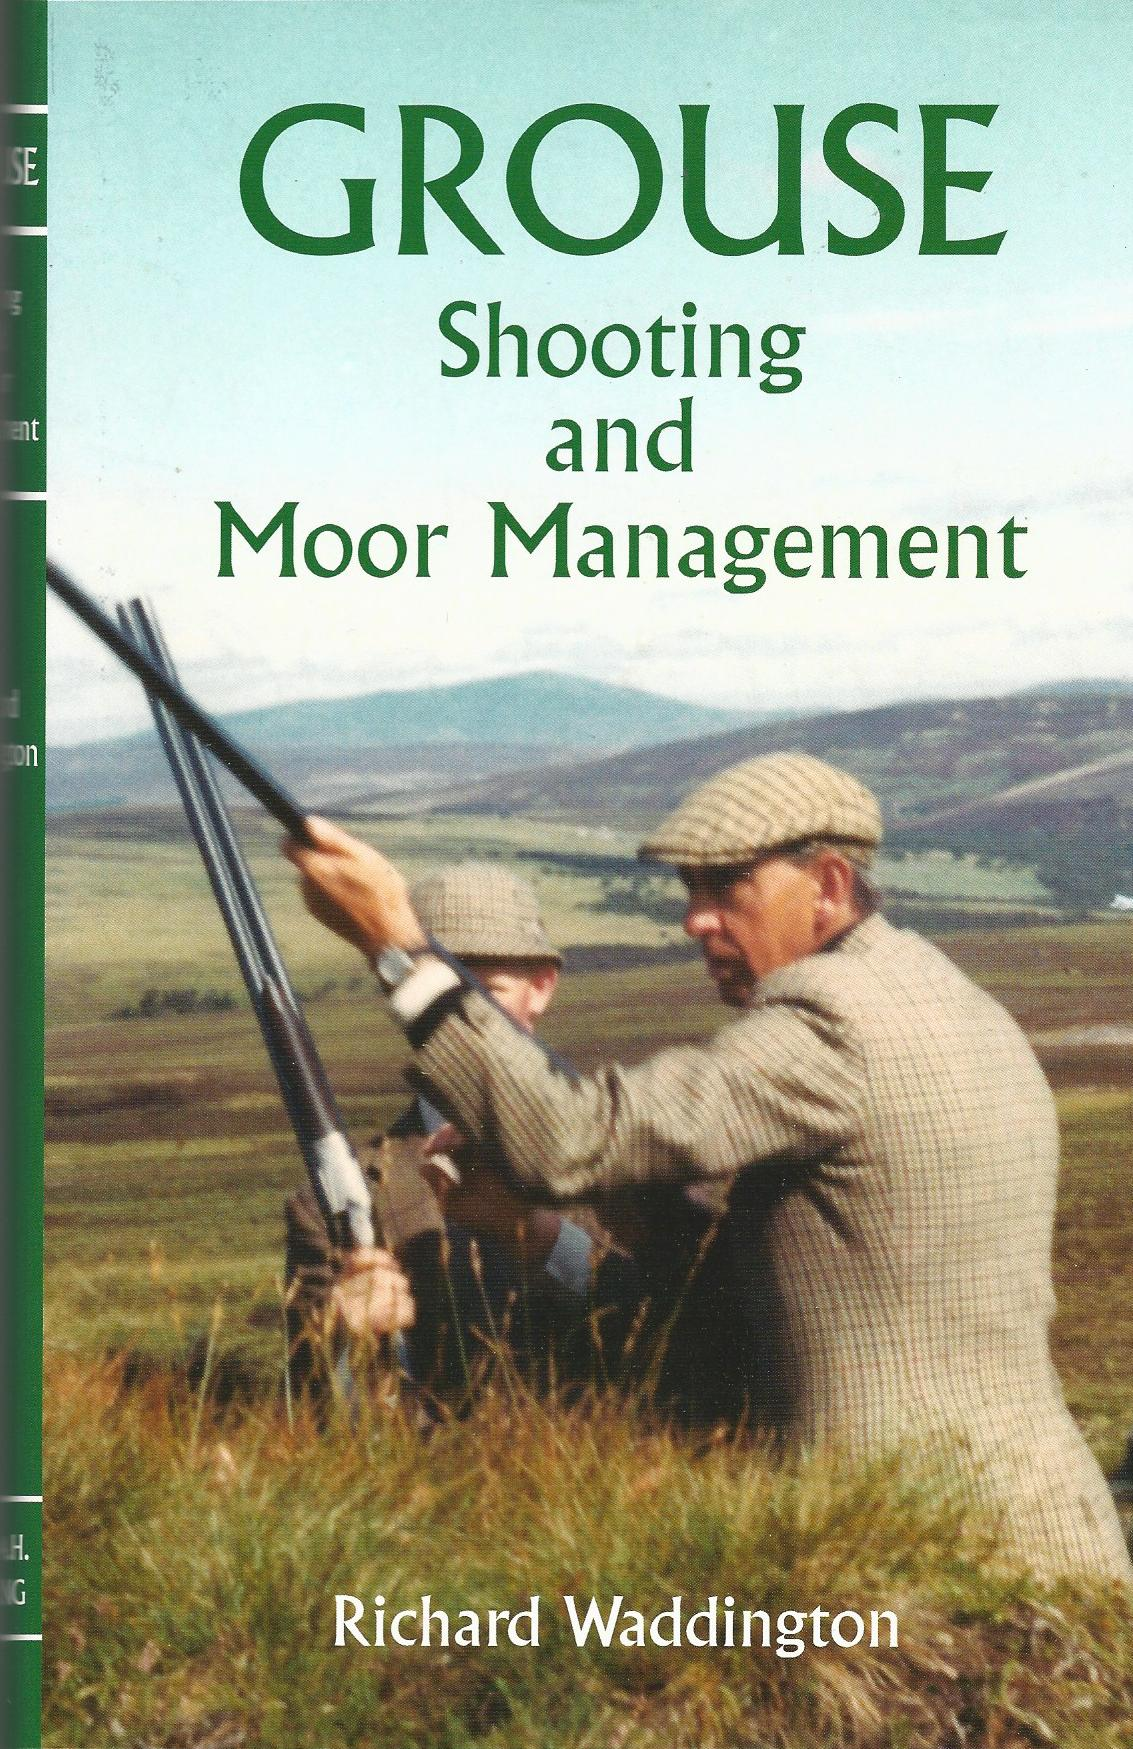 Image for Grouse Shooting and Moor Management